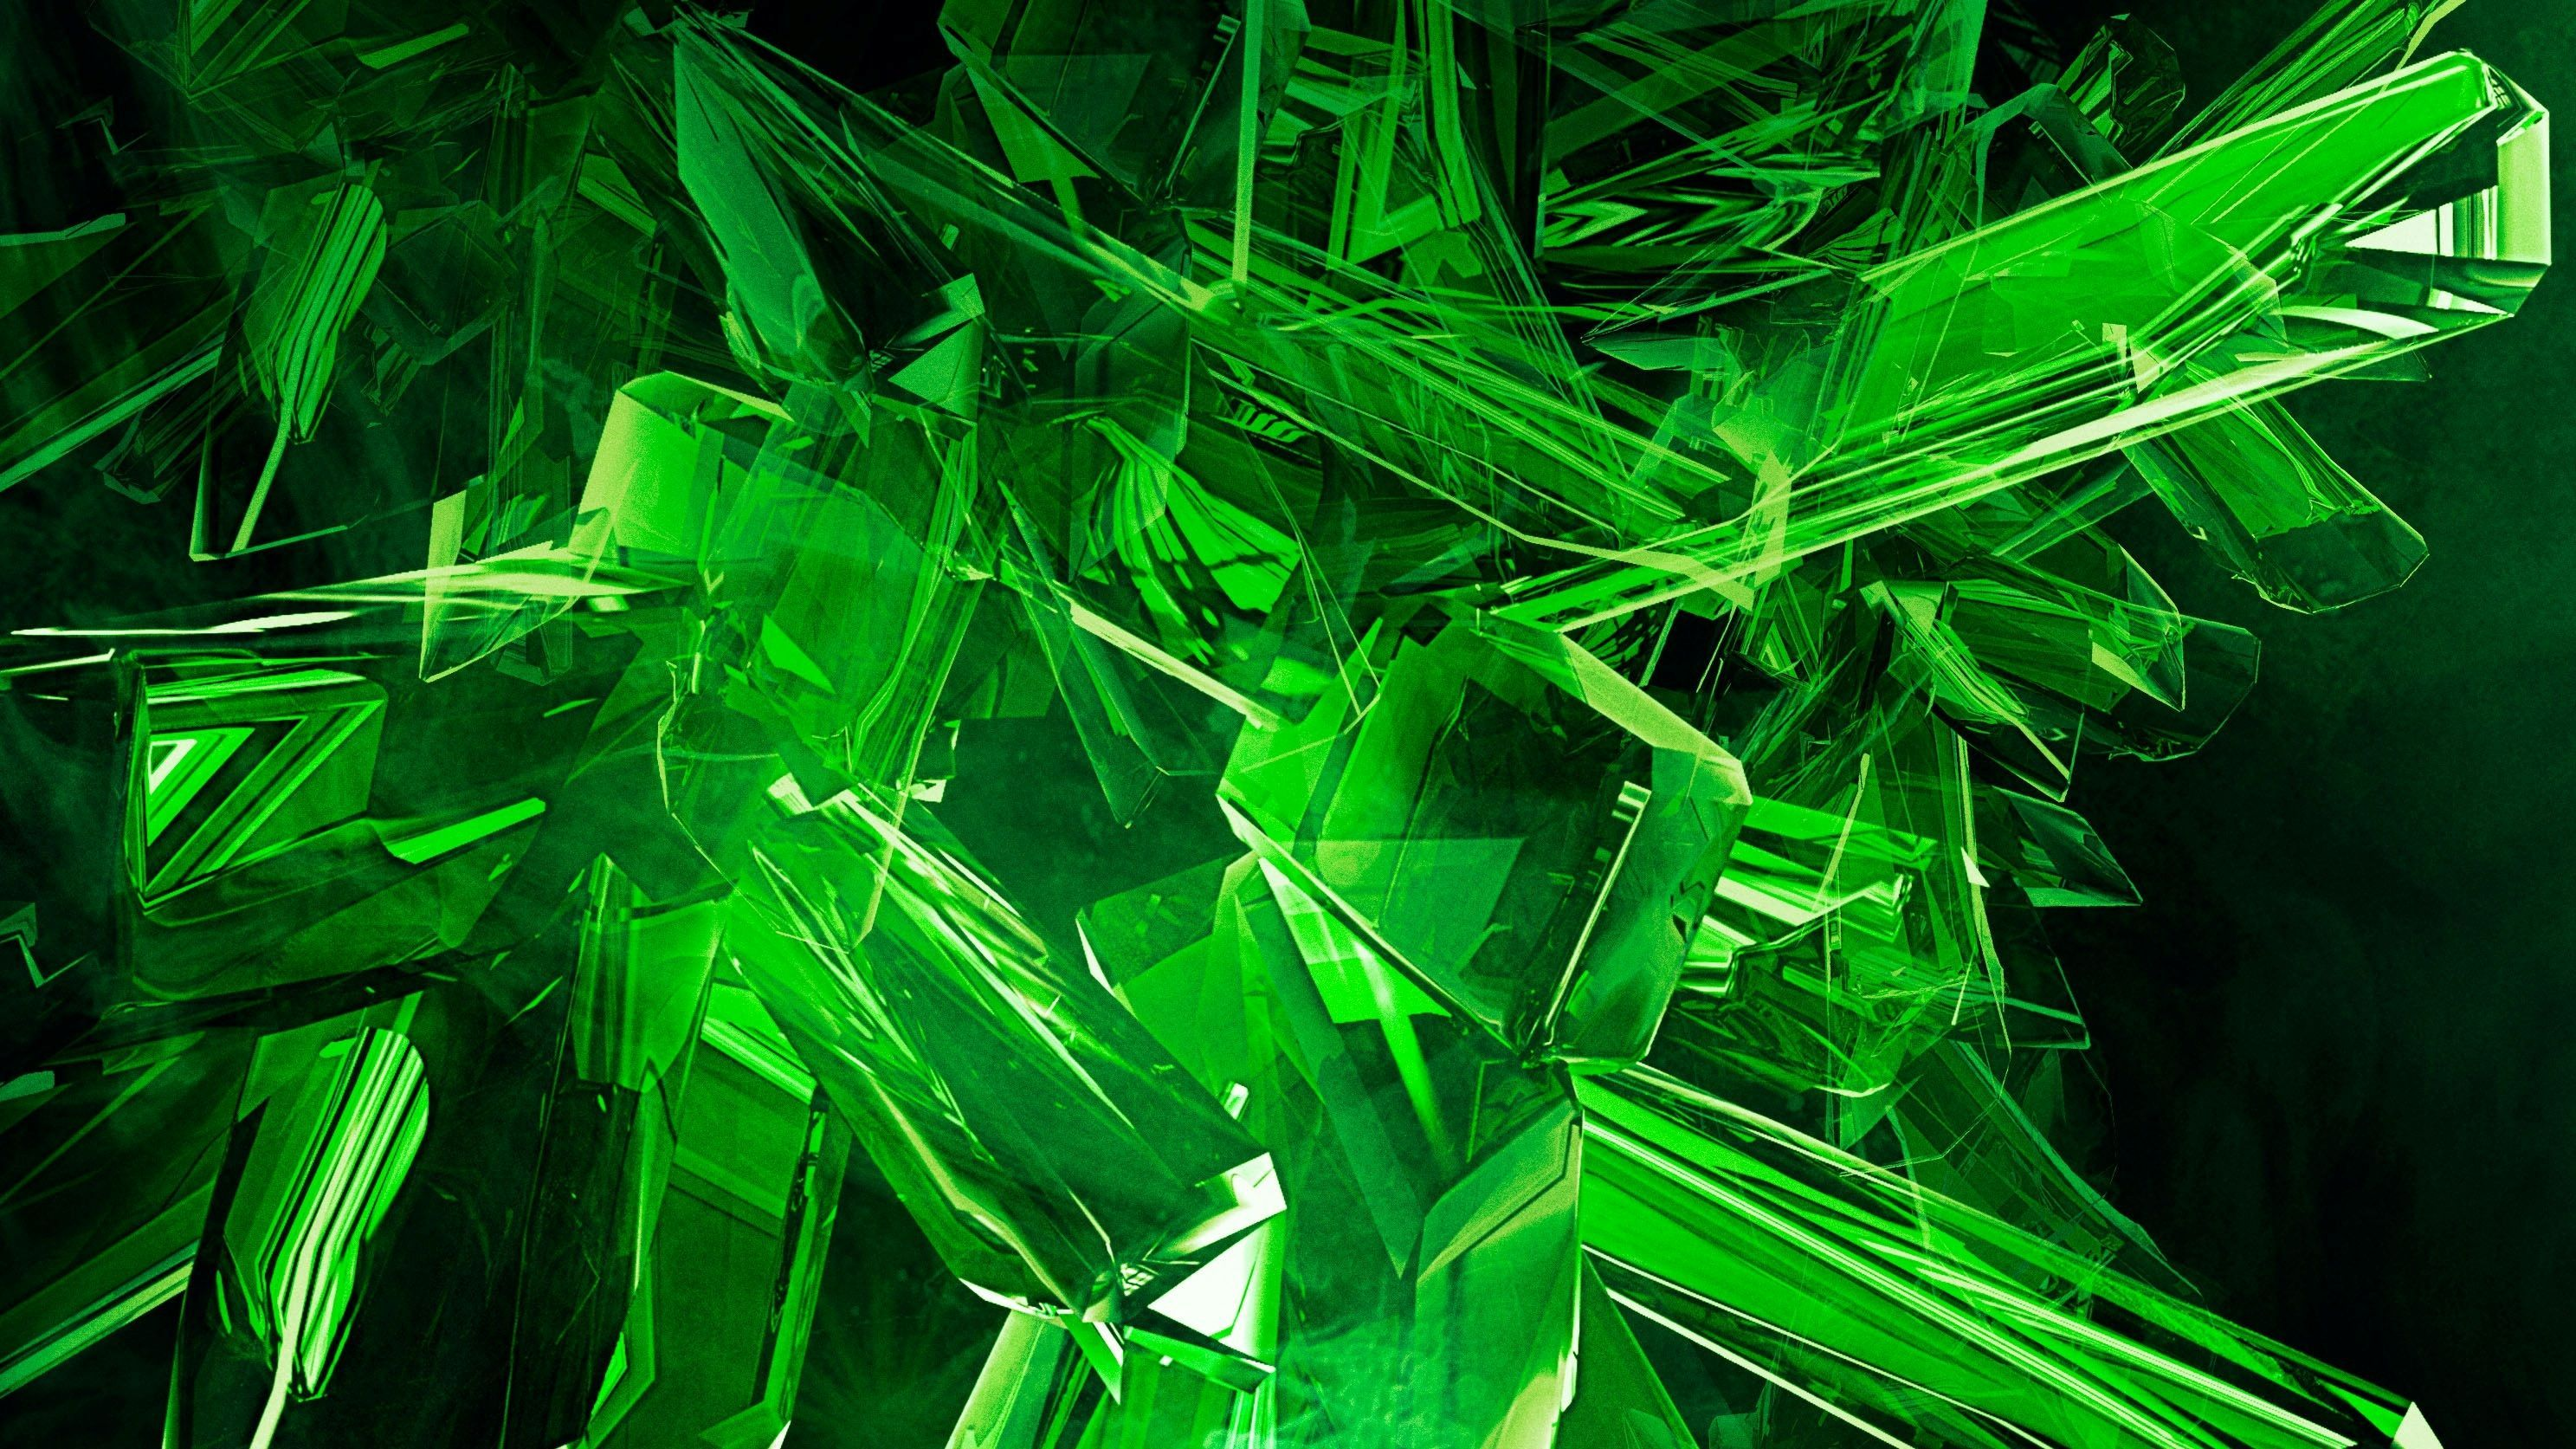 Green Cool Phone Wallpapers Top Free Green Cool Phone Backgrounds Wallpaperaccess